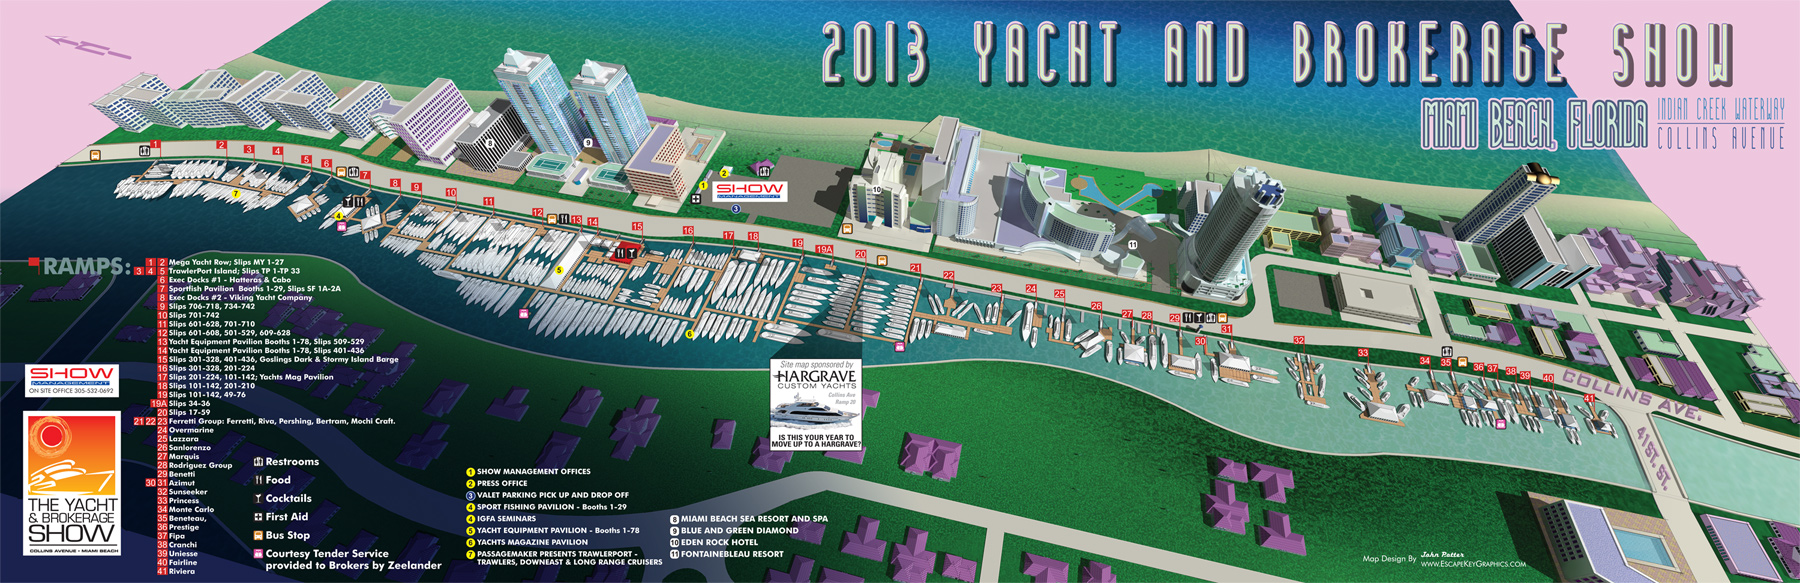 Yacht and Brokerage Show in Miami Beach 2013 map